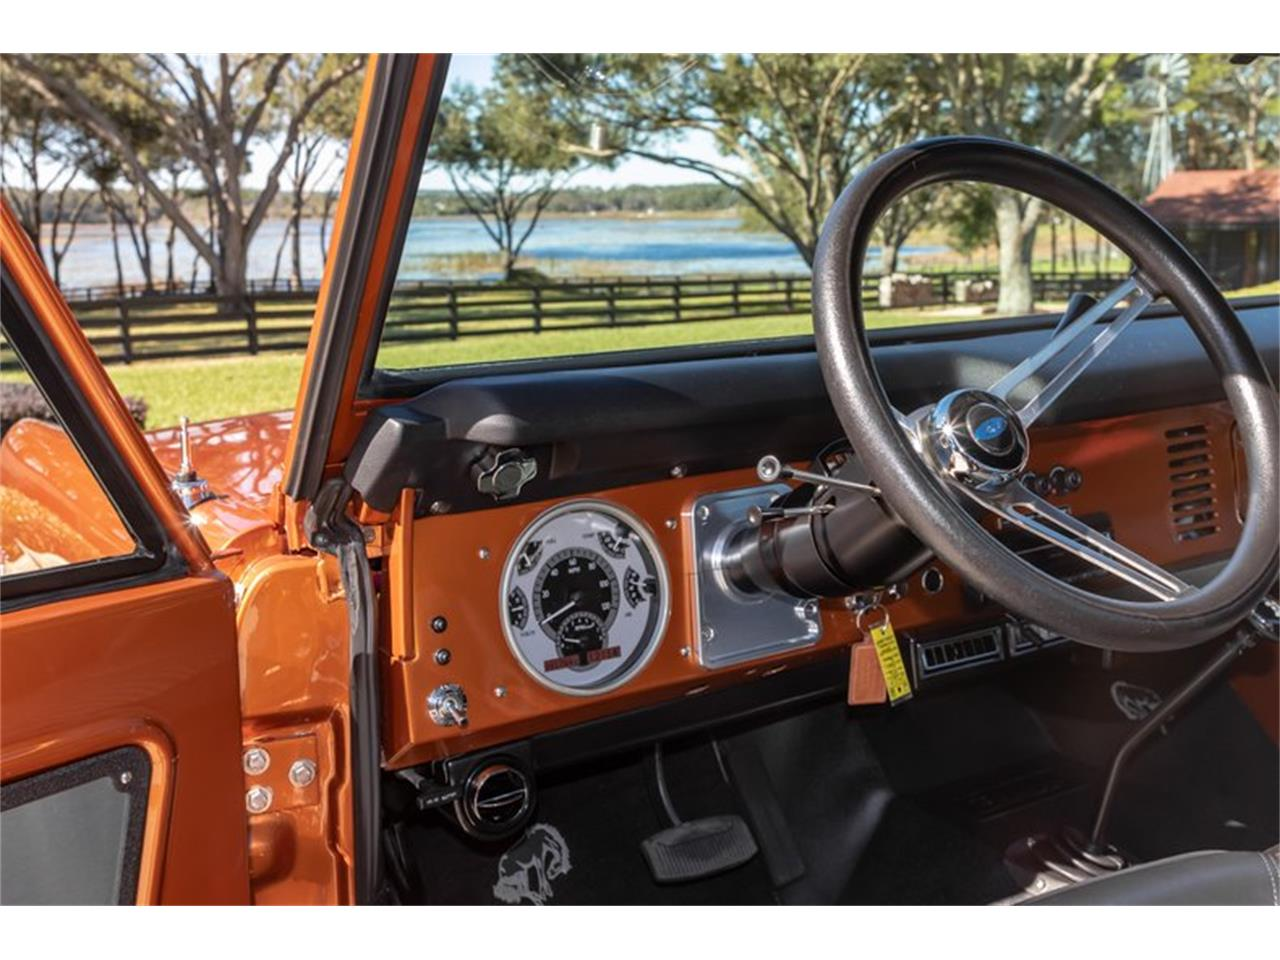 Large Picture of 1976 Bronco located in Greensboro North Carolina Auction Vehicle - Q8U3